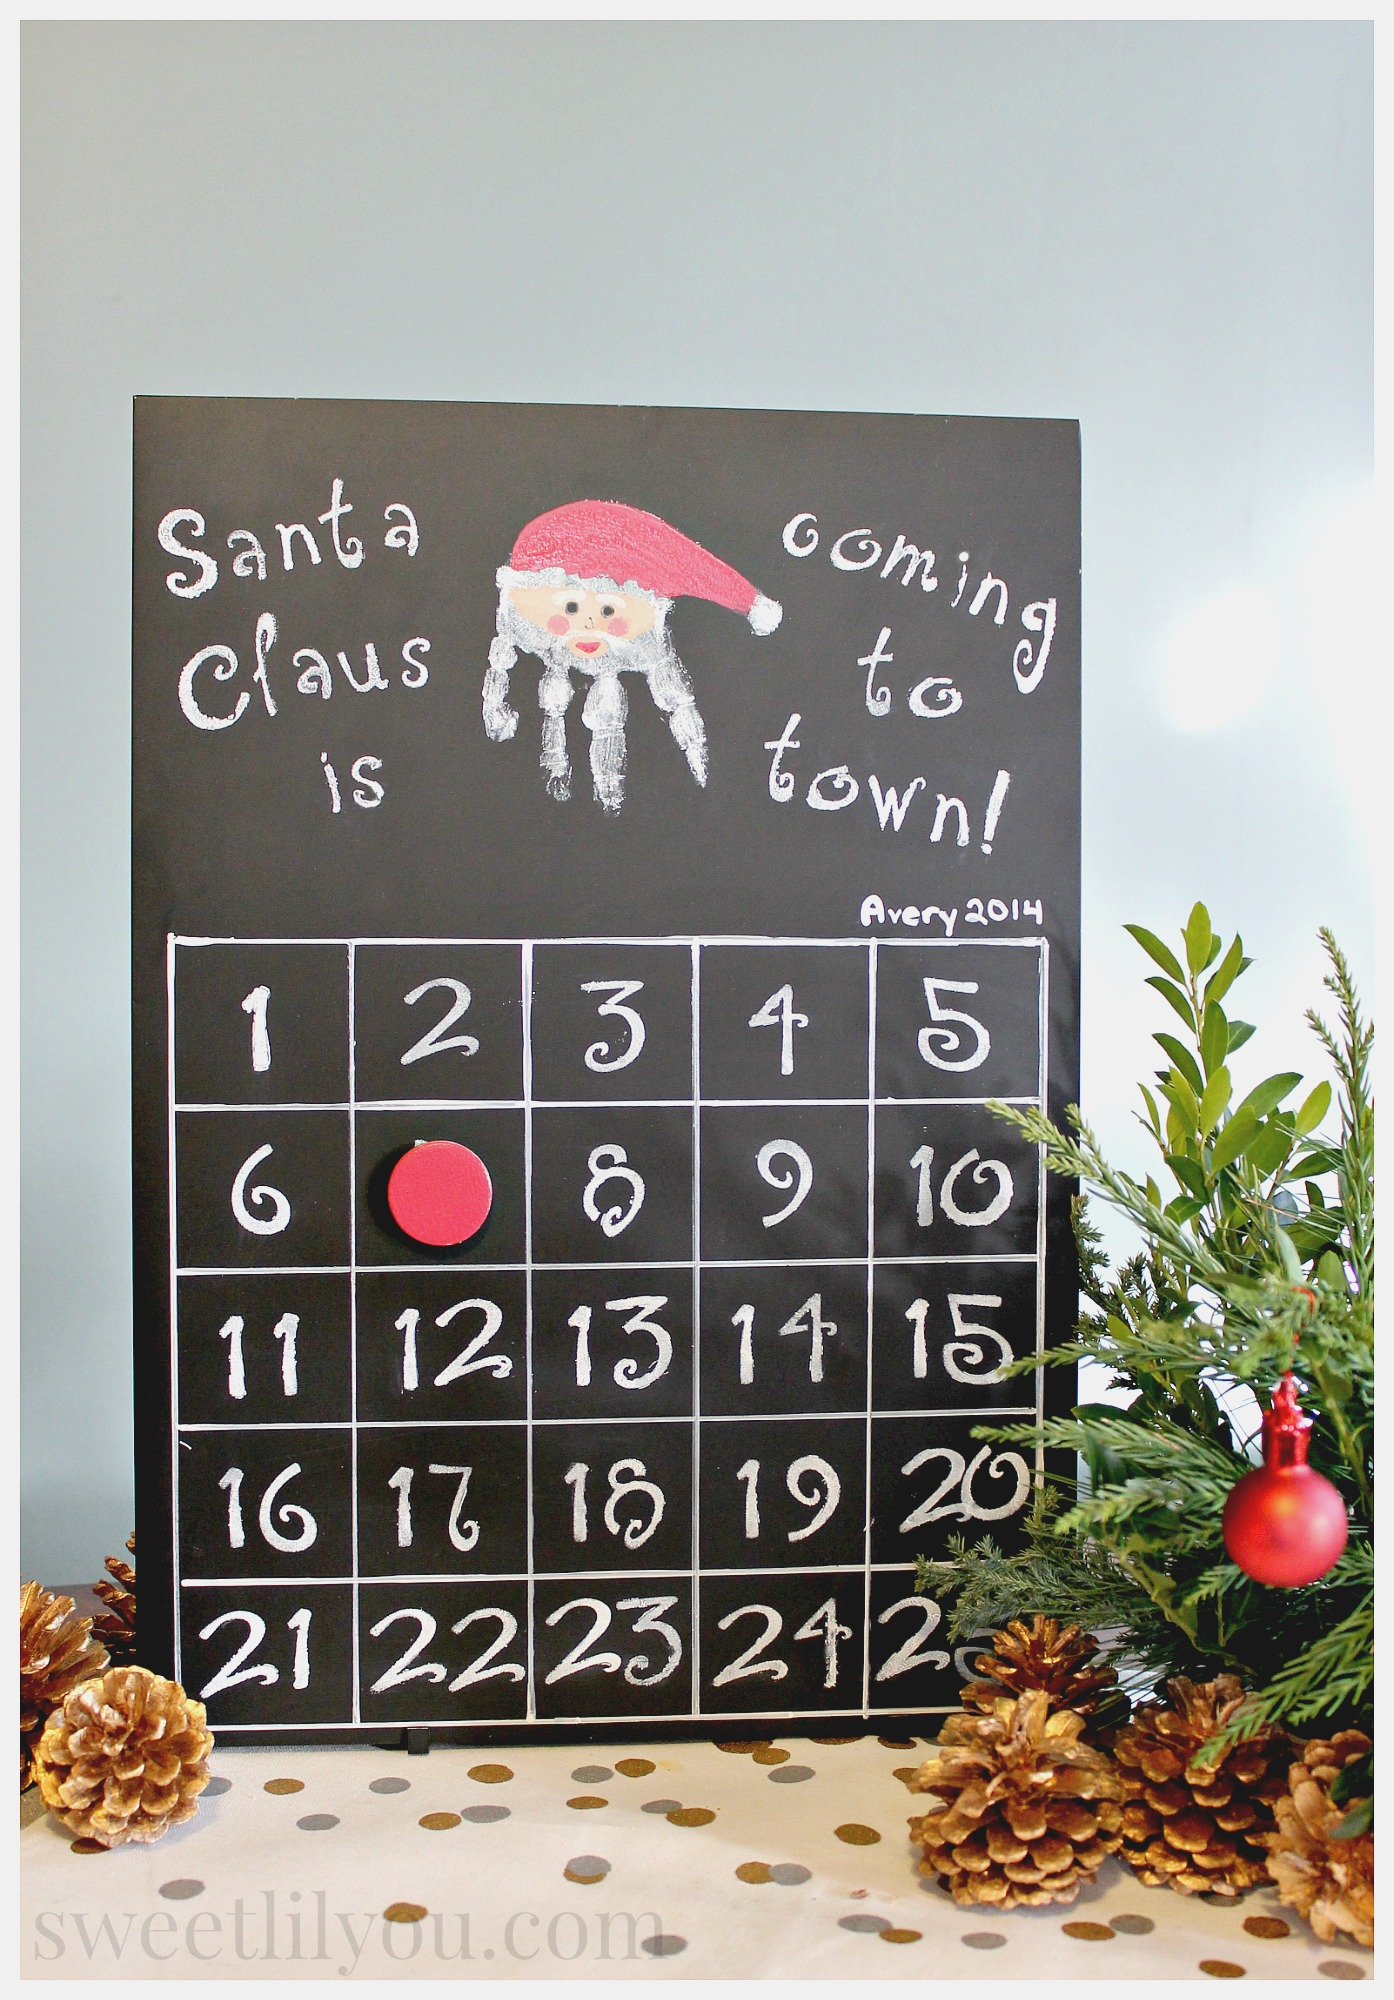 Christmas countdown calendar diy sweet lil you for Make your own christmas countdown calendar